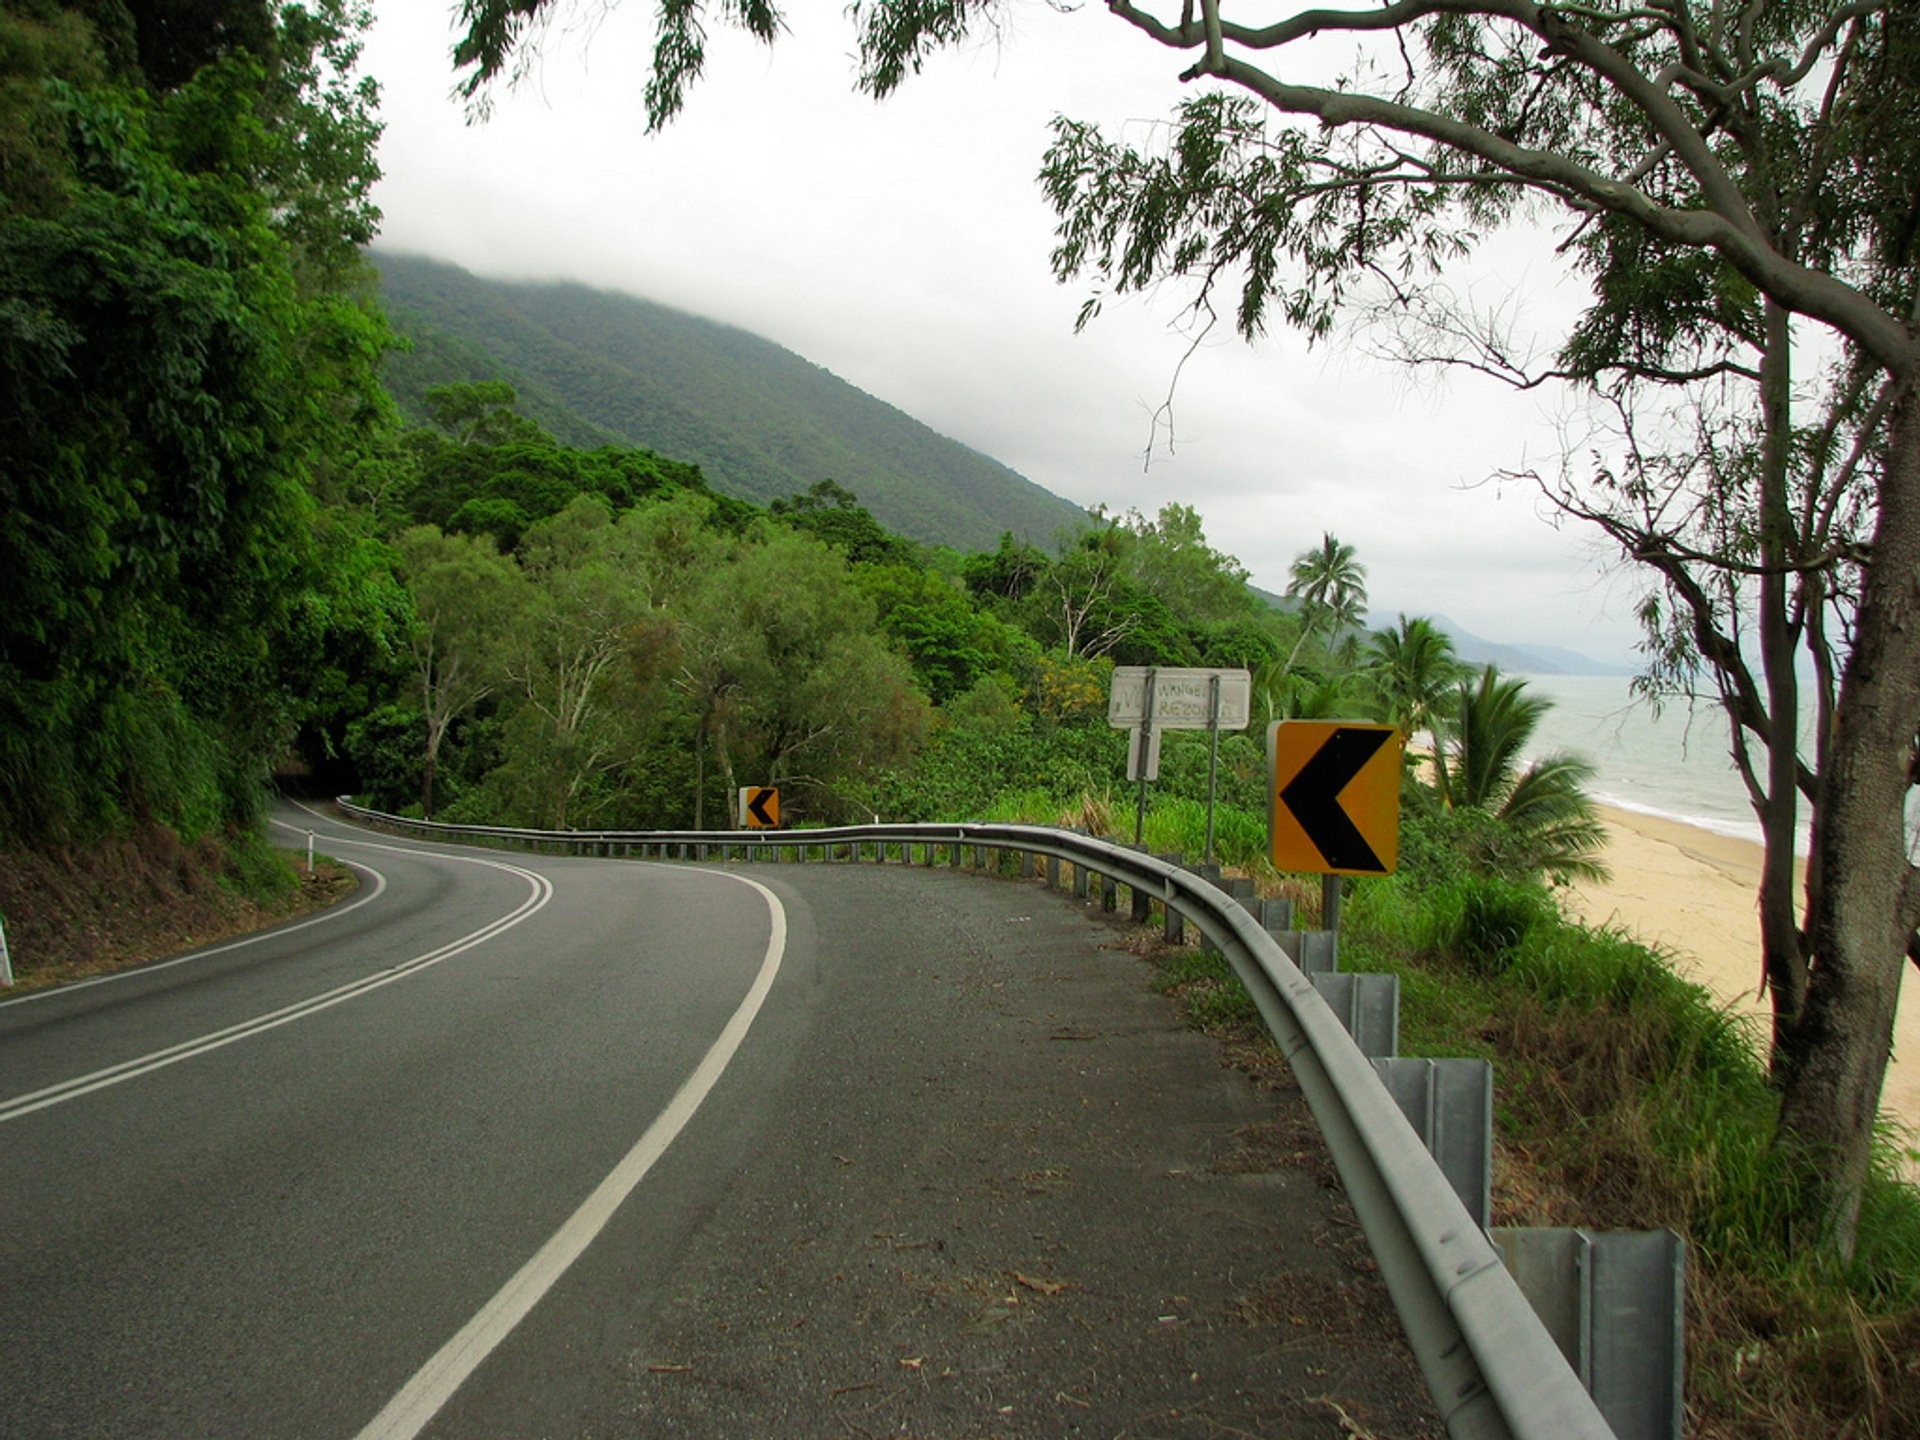 Captain Cook Highway at Ellis Beach where you see both the long strip of Ellis Beach with coconut palms, and the cloud-brushed Great Escarpment / Macalister Range 2020